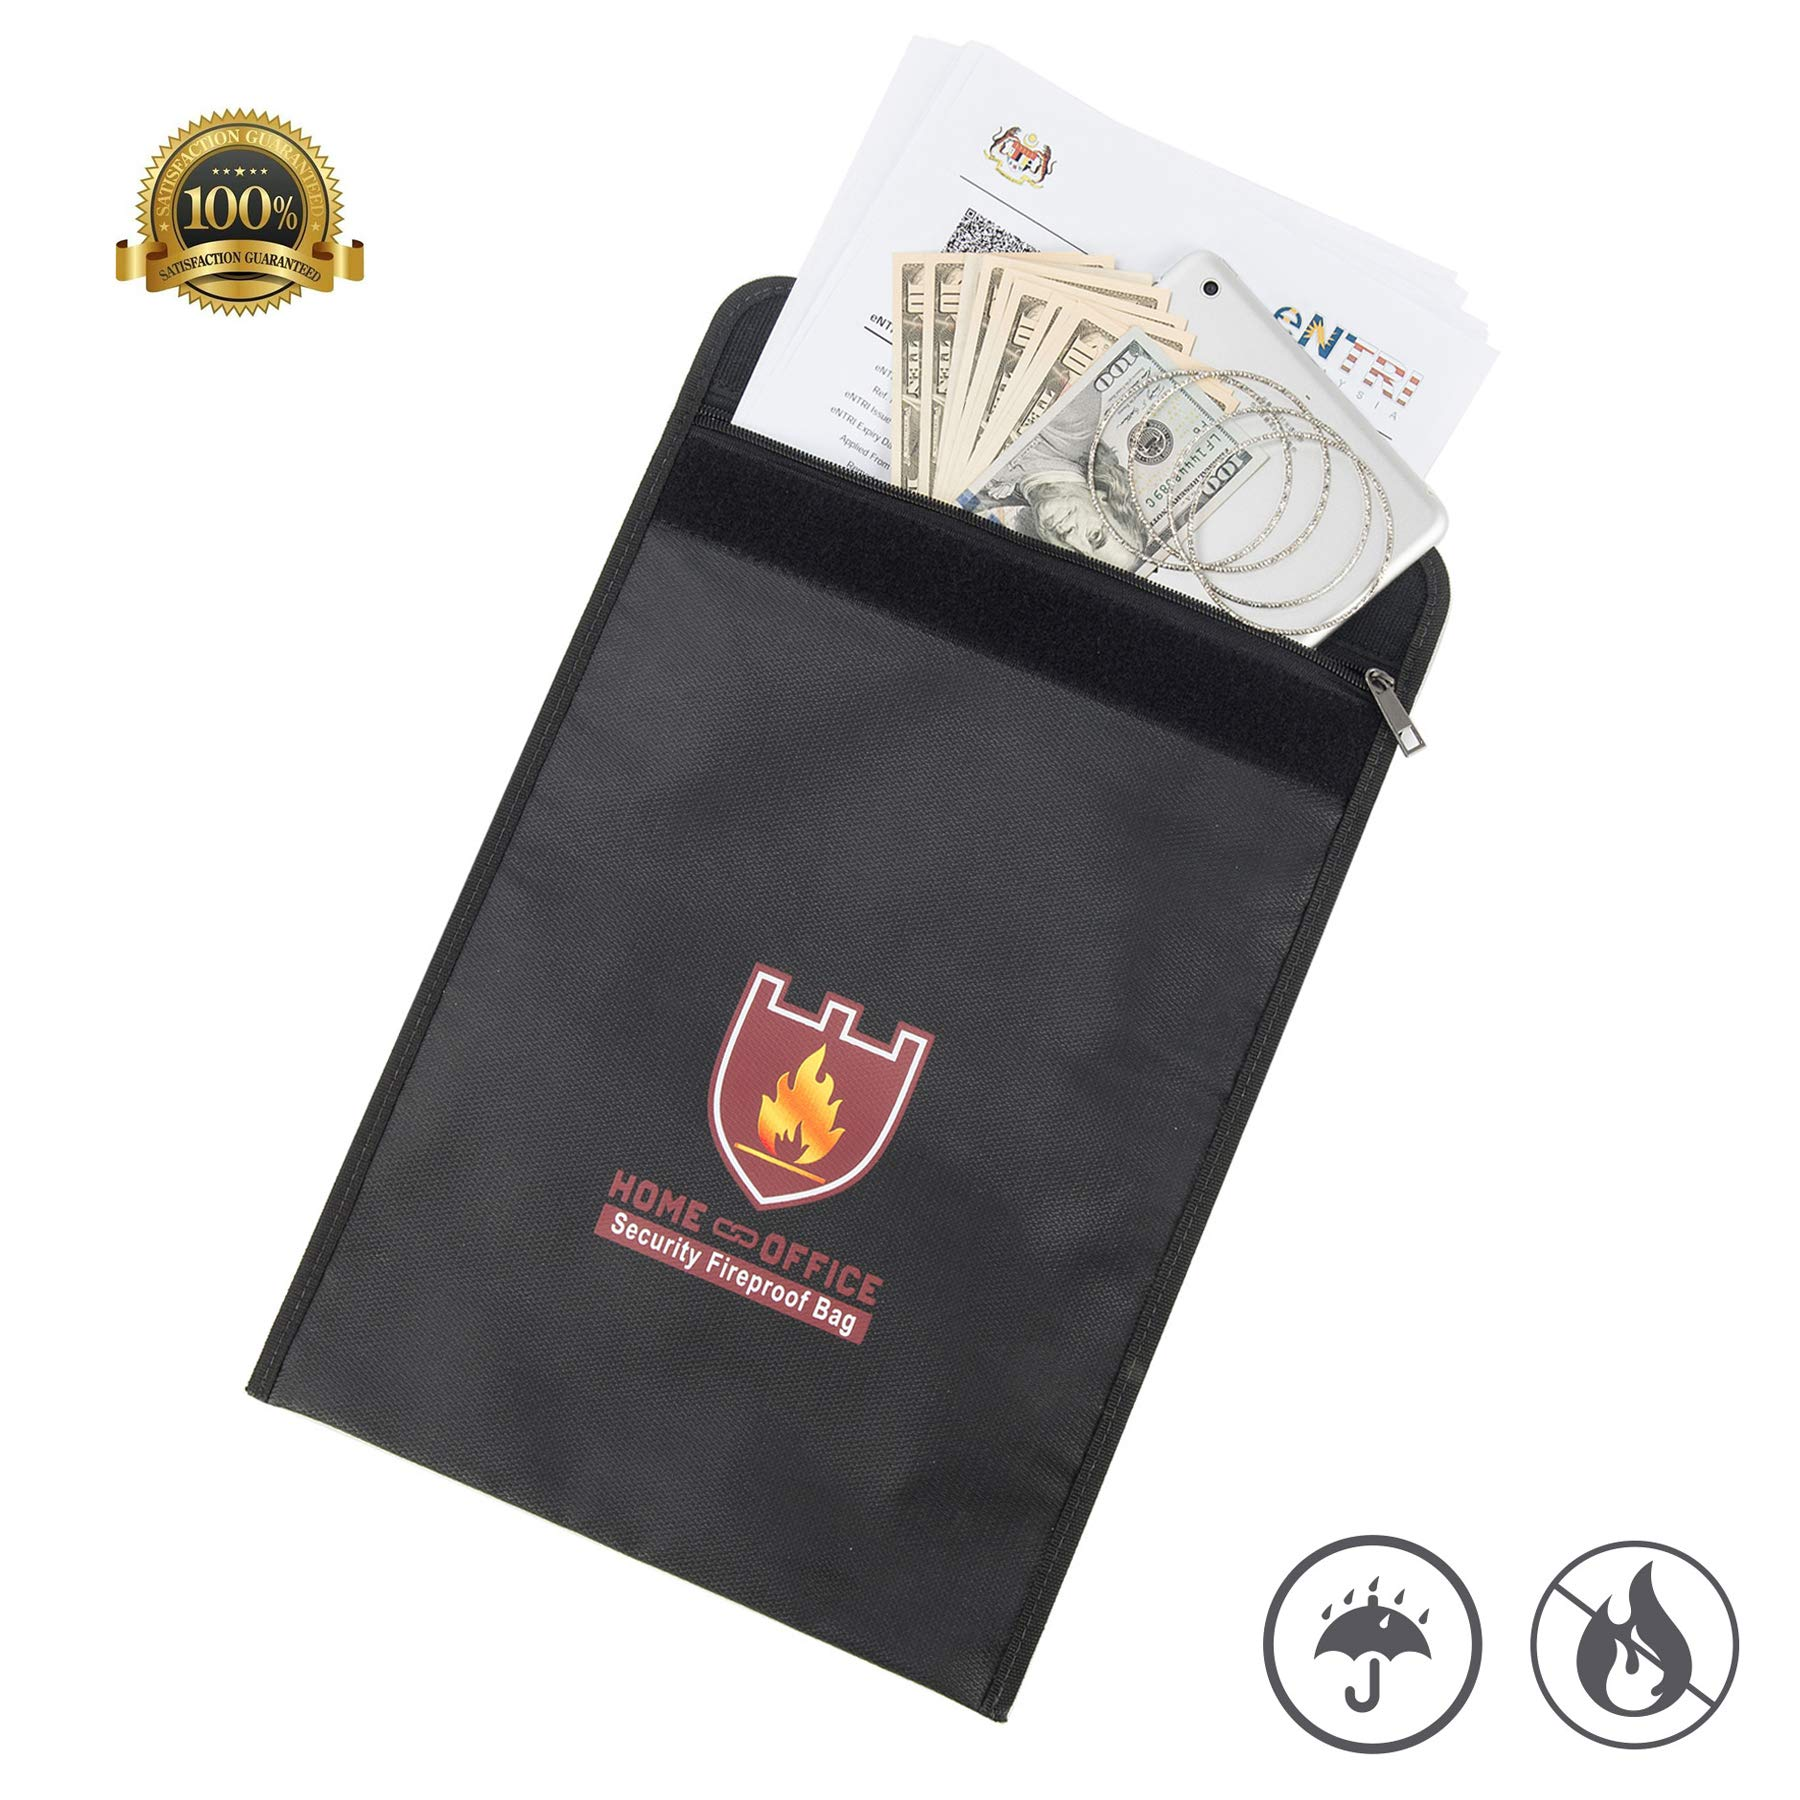 CO-Z Fireproof Document Bag Silicone Coated Fire Resistant Money Bag Fireproof Safe Storage for Money, Documents, Jewelry and Passport, Heat-Resistant 1400°F (15''x11'')